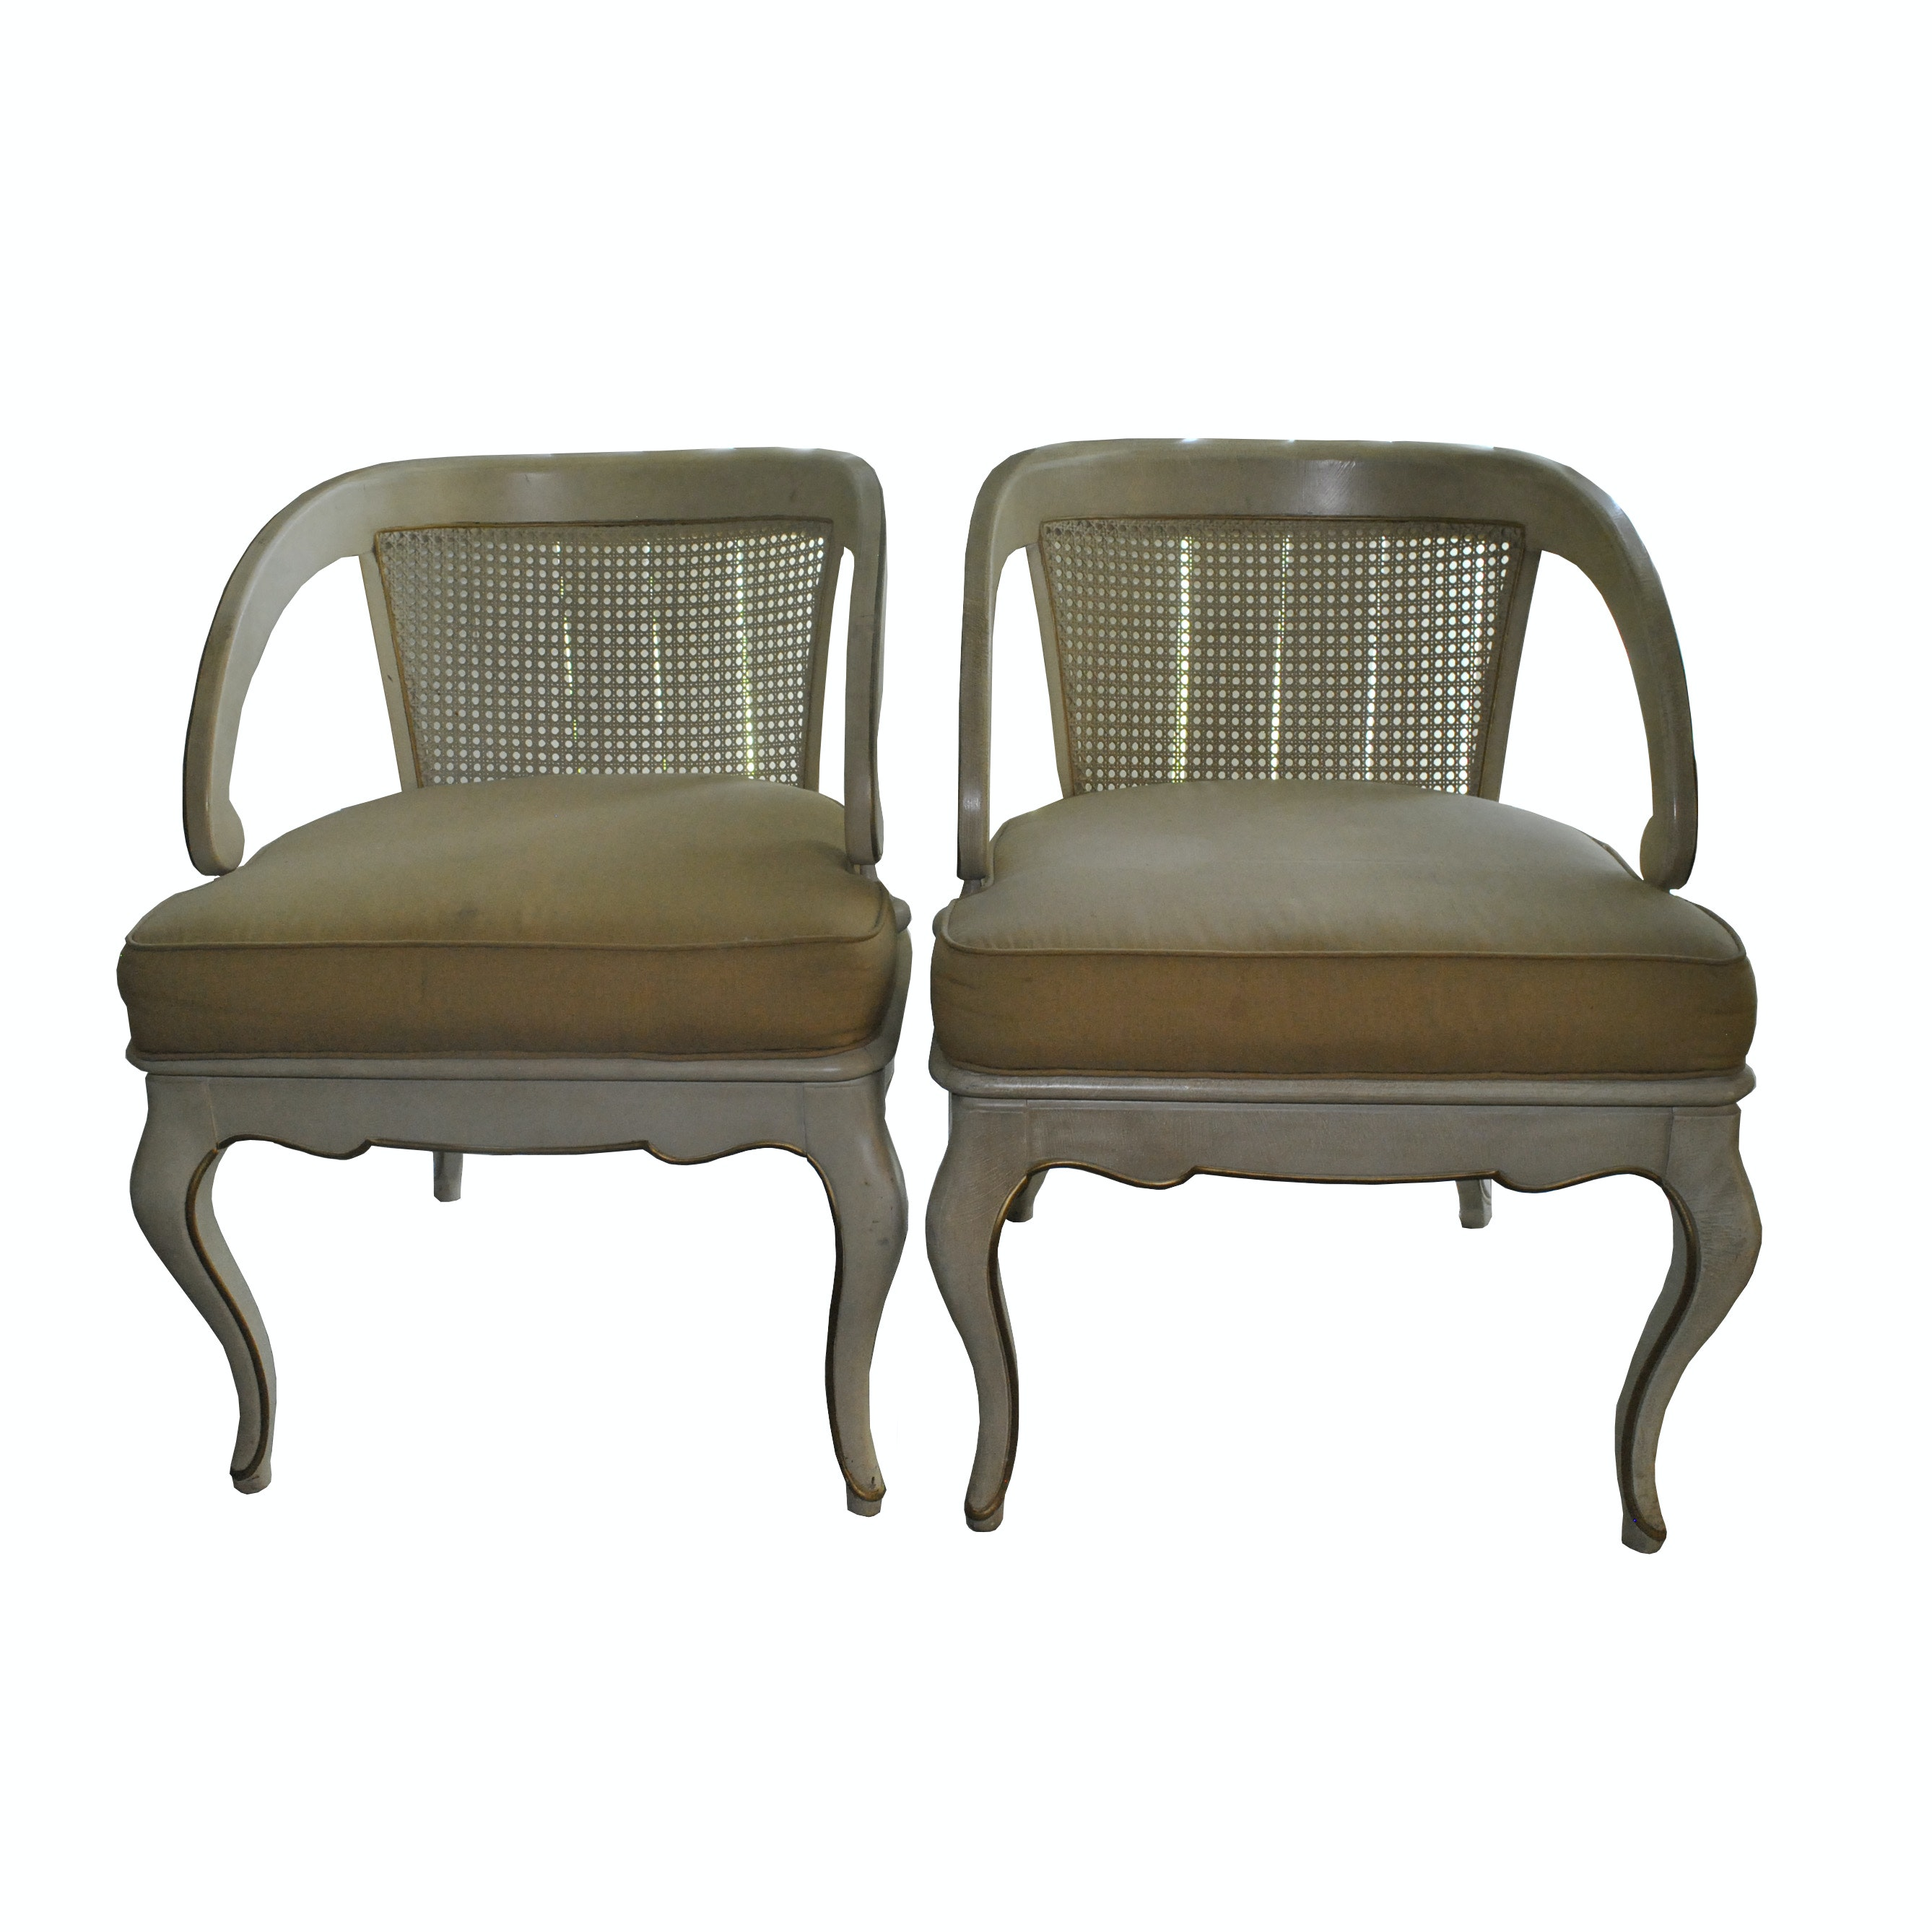 Cream And Gold Cane Back Louis XV Style Tub Chairs With Gold Seat Cushions